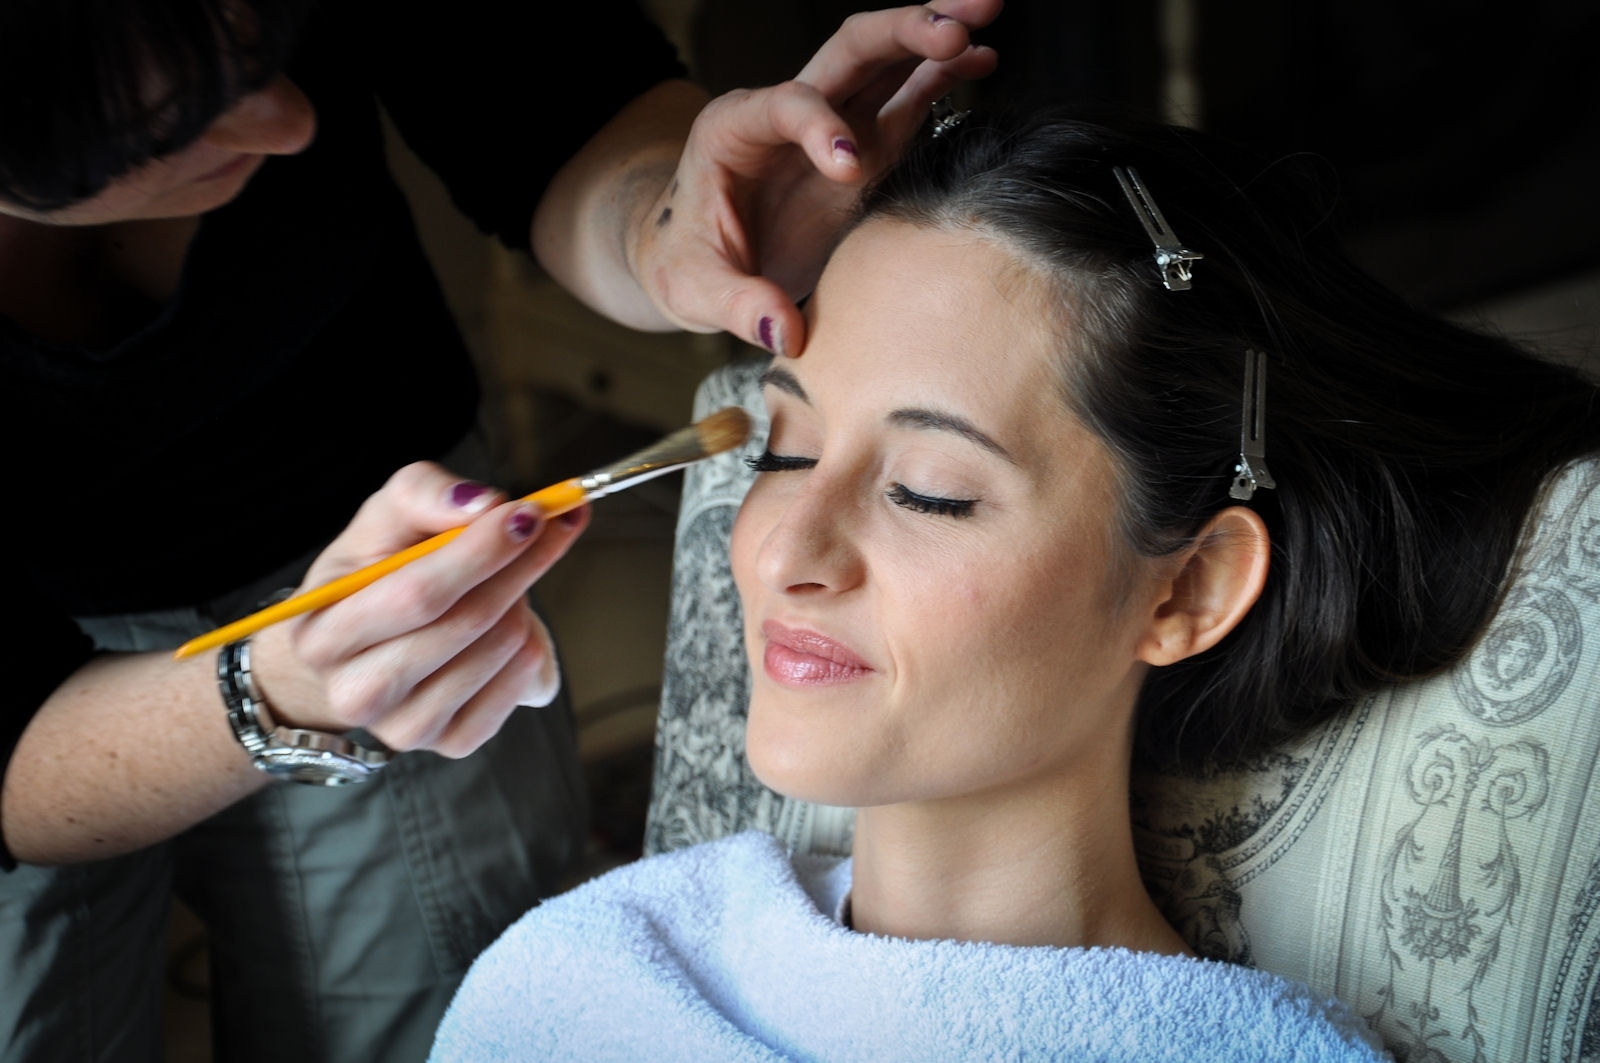 maquillage-mariage-preparation-mariee-kimcass